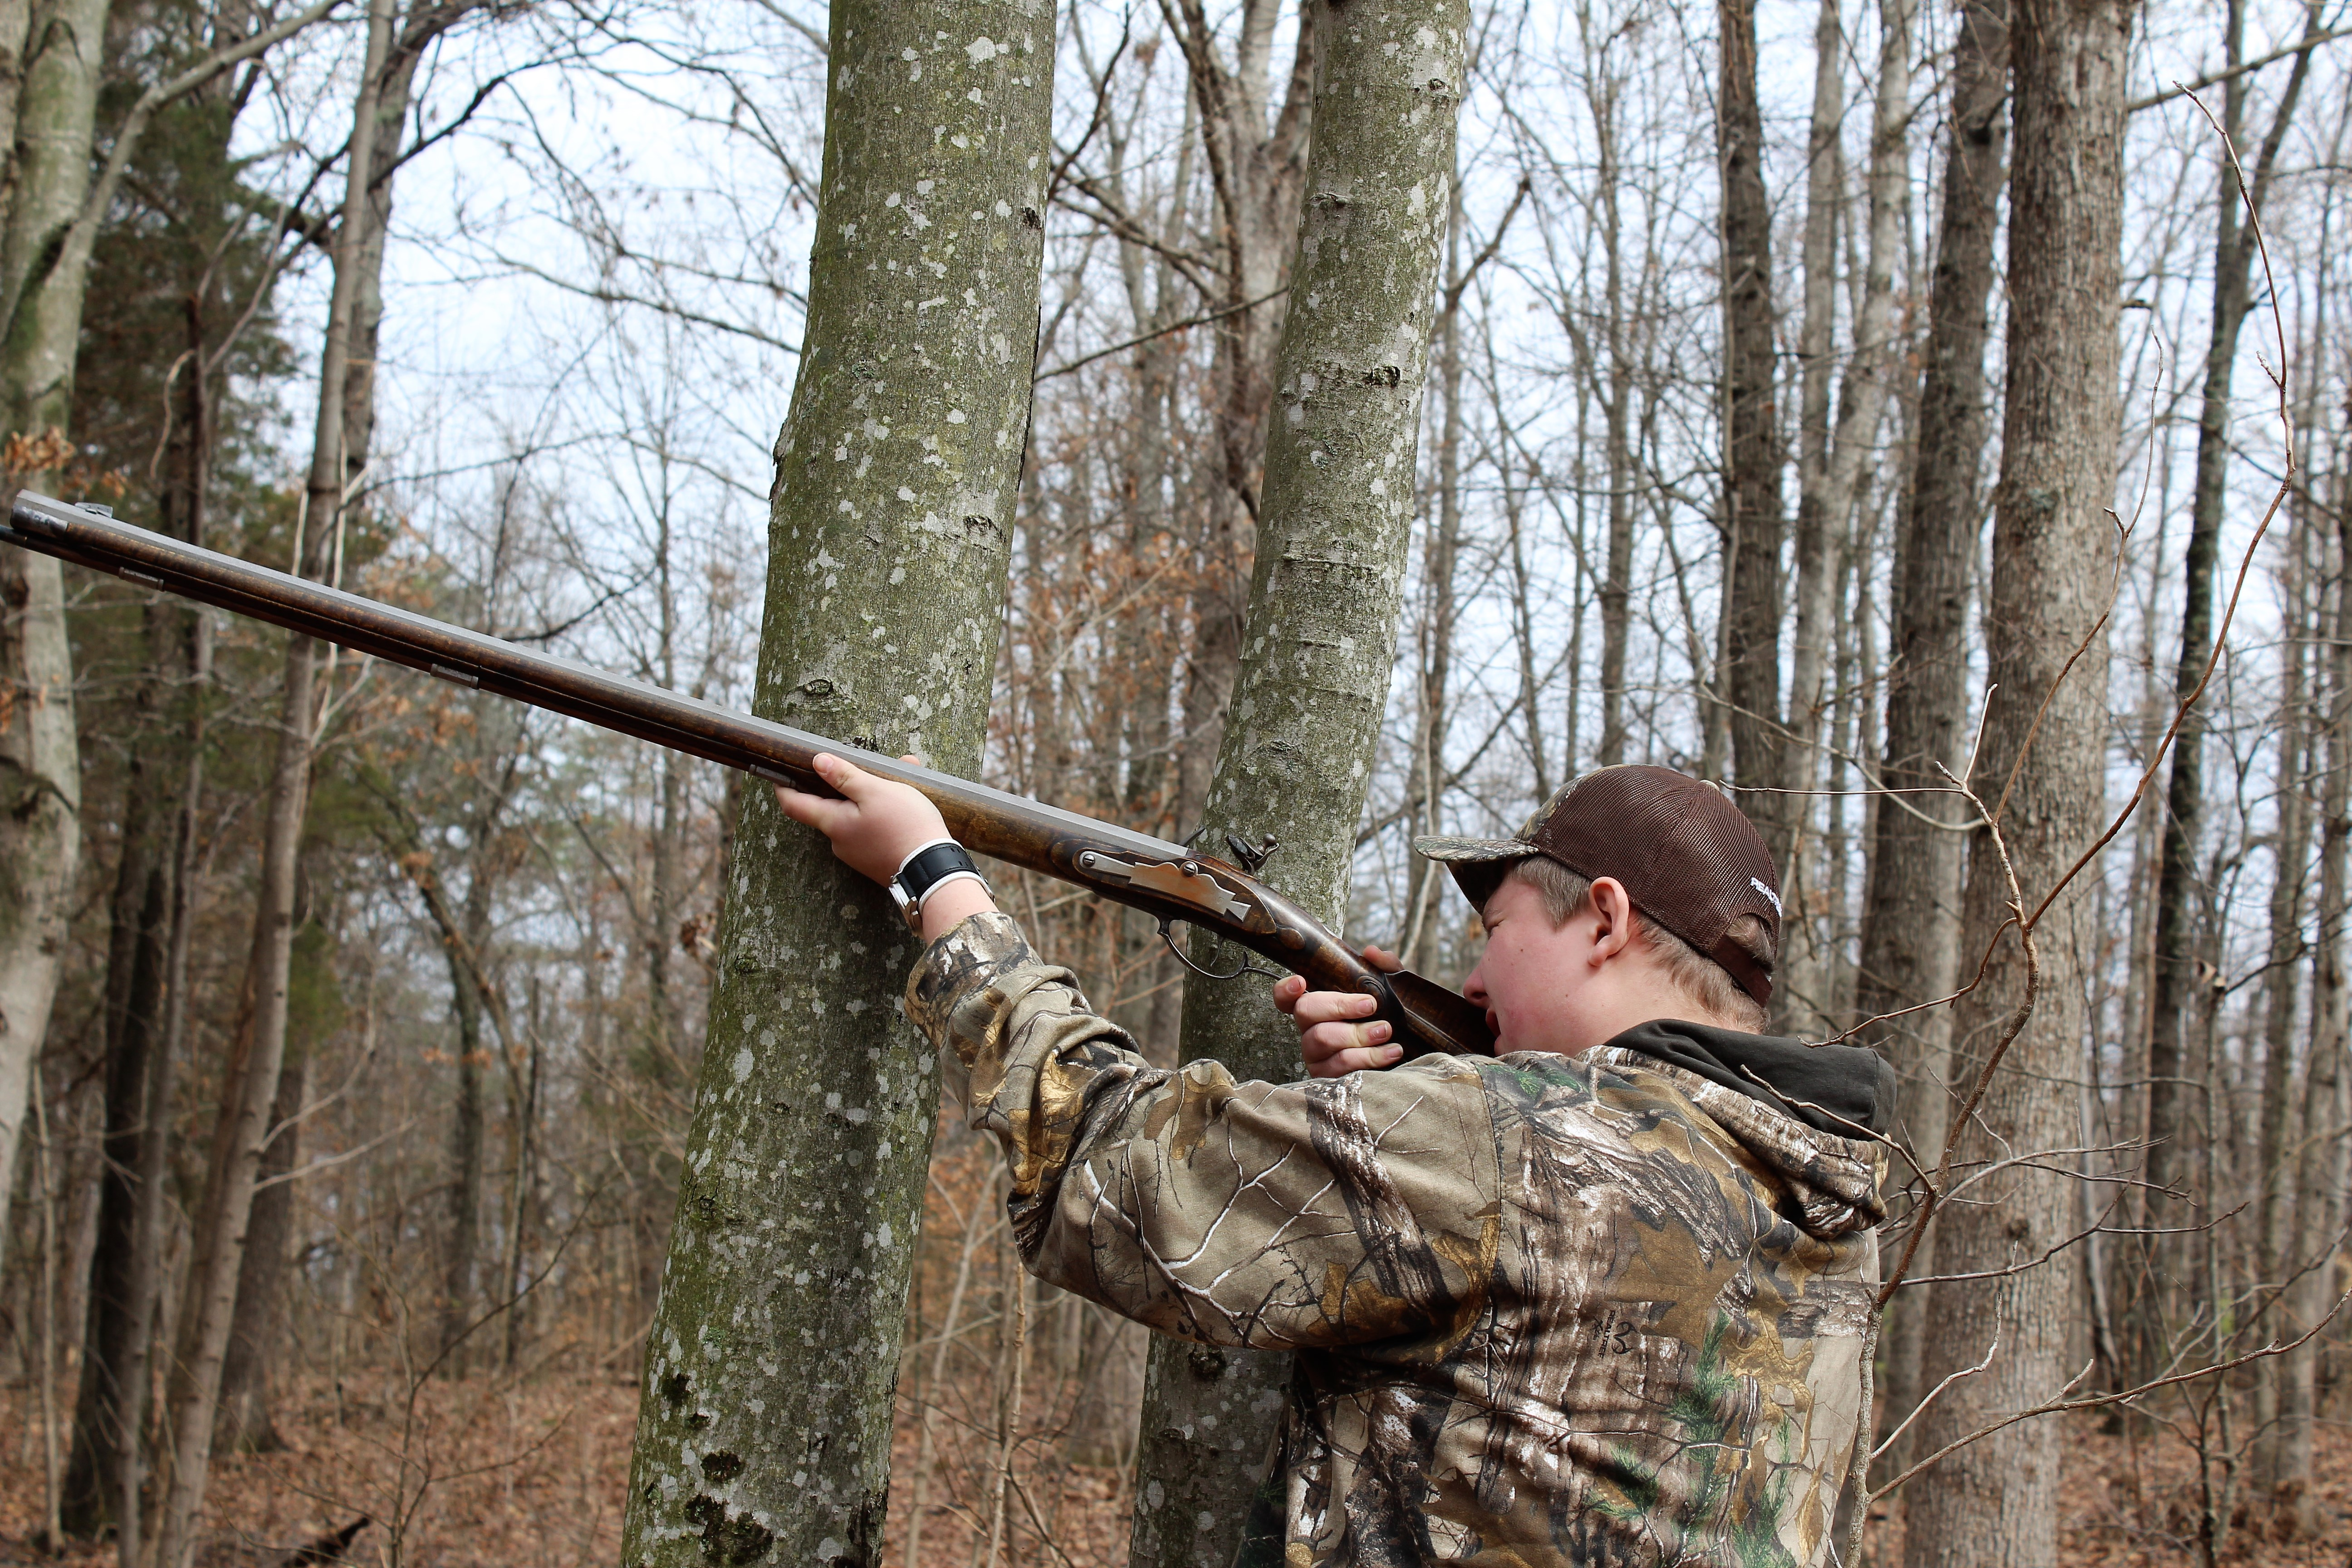 Guide to Blackpowder Squirrel Hunting | Small Game Hunting